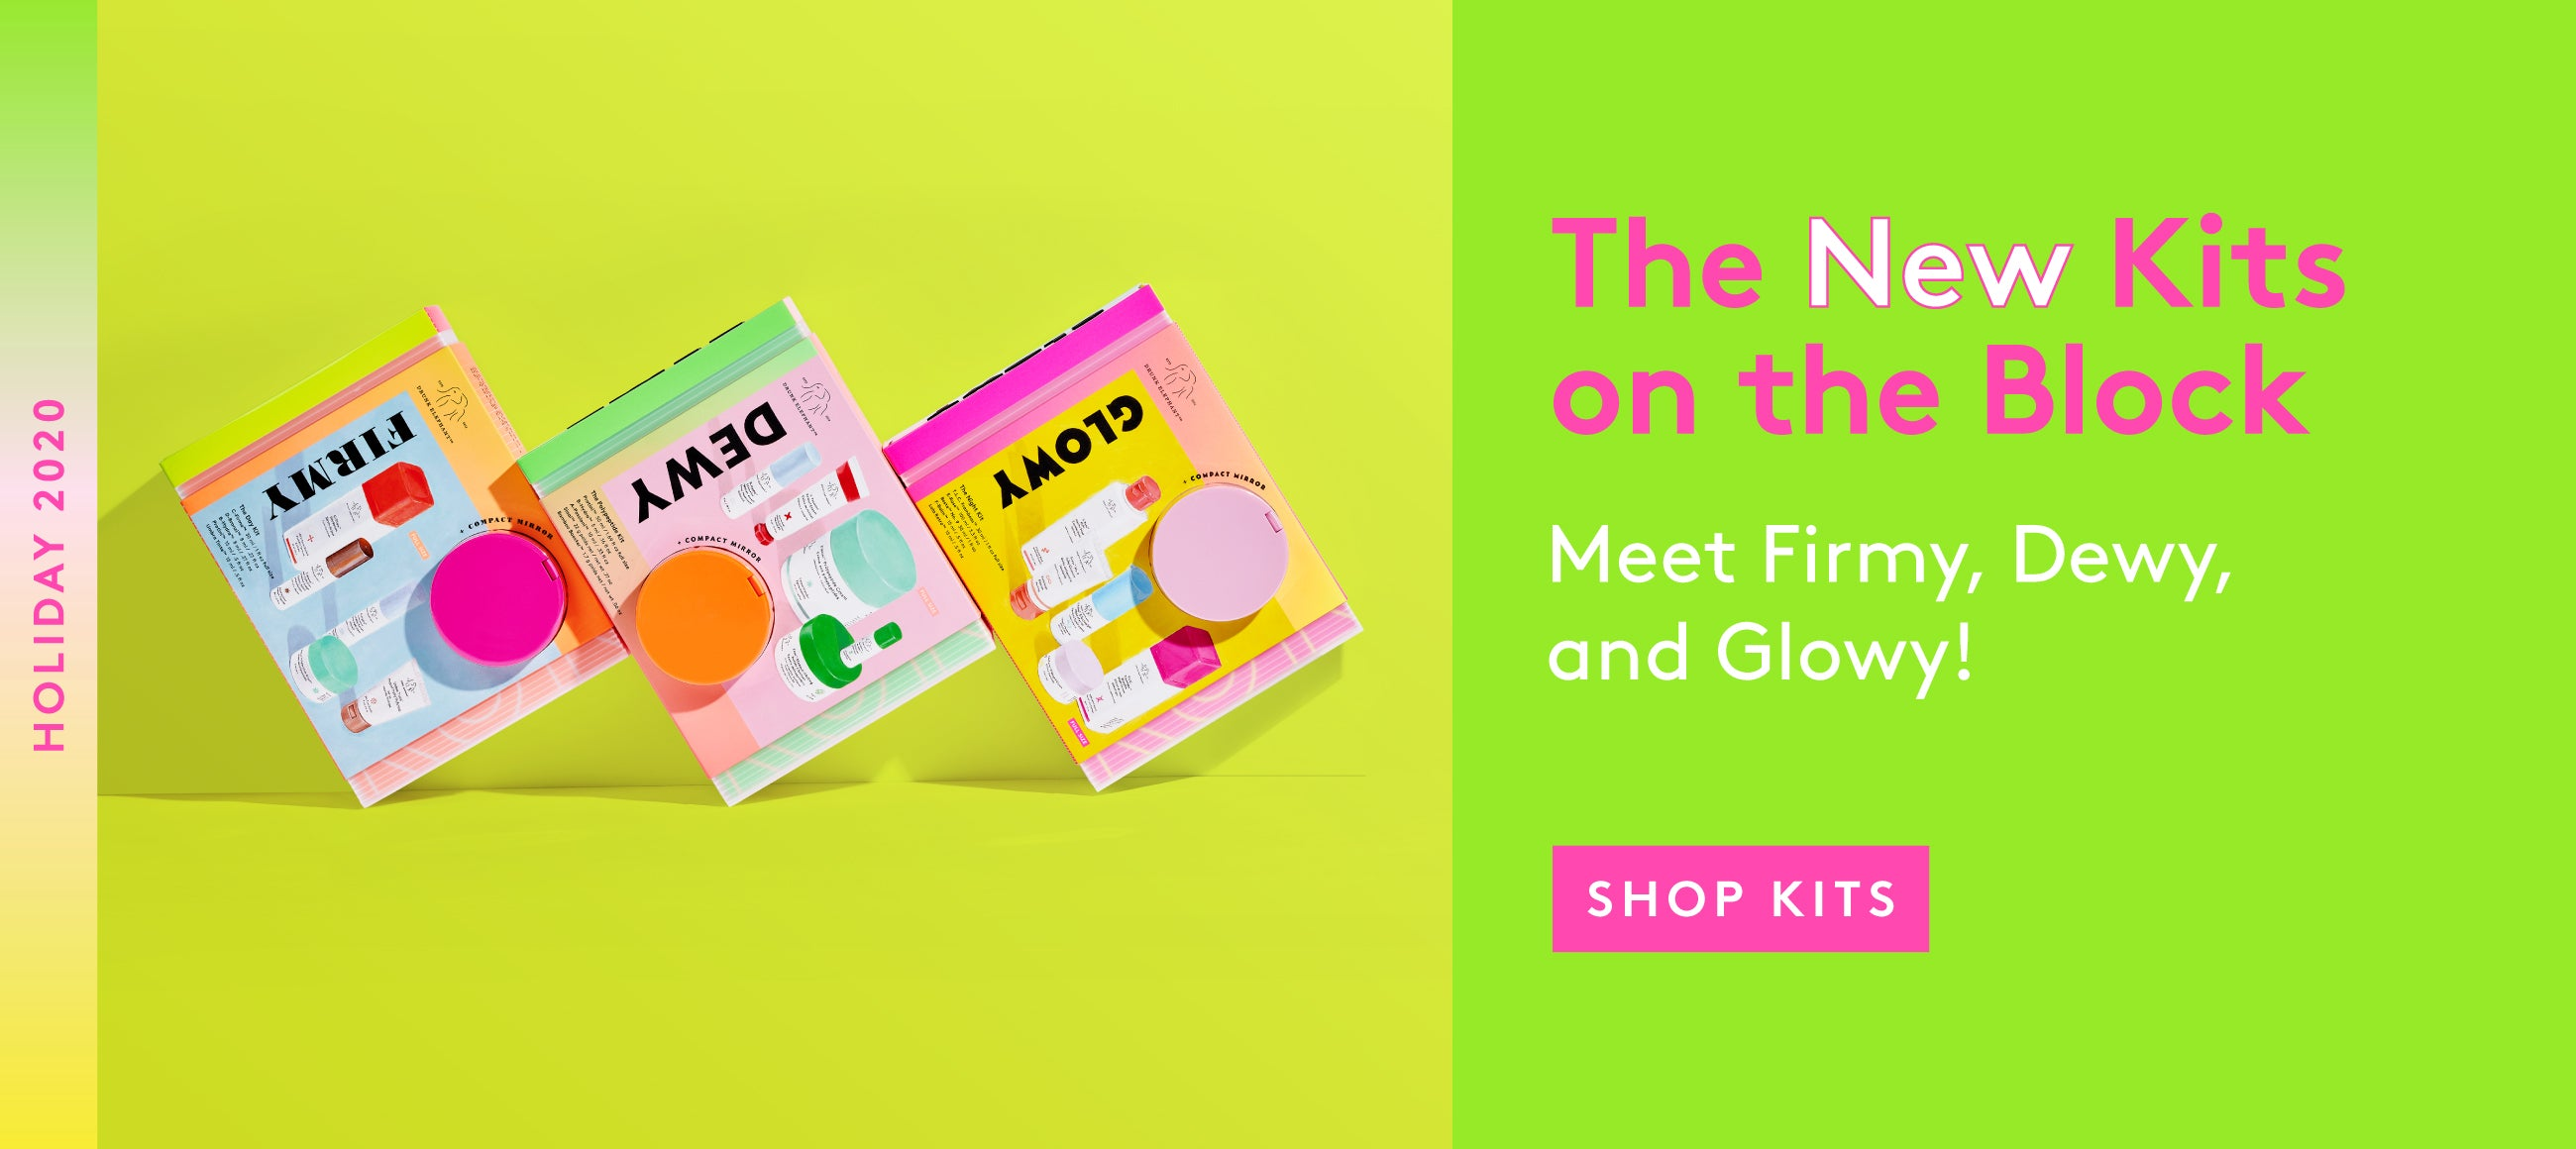 Drunk Elephant - New Holiday 2020 Kits - FIRMY the day kit featuring C-Firma, DEWY the Polypeptide kit featuring Protini, GLOWY the night kit featuring TLC Framboos. Shop now!